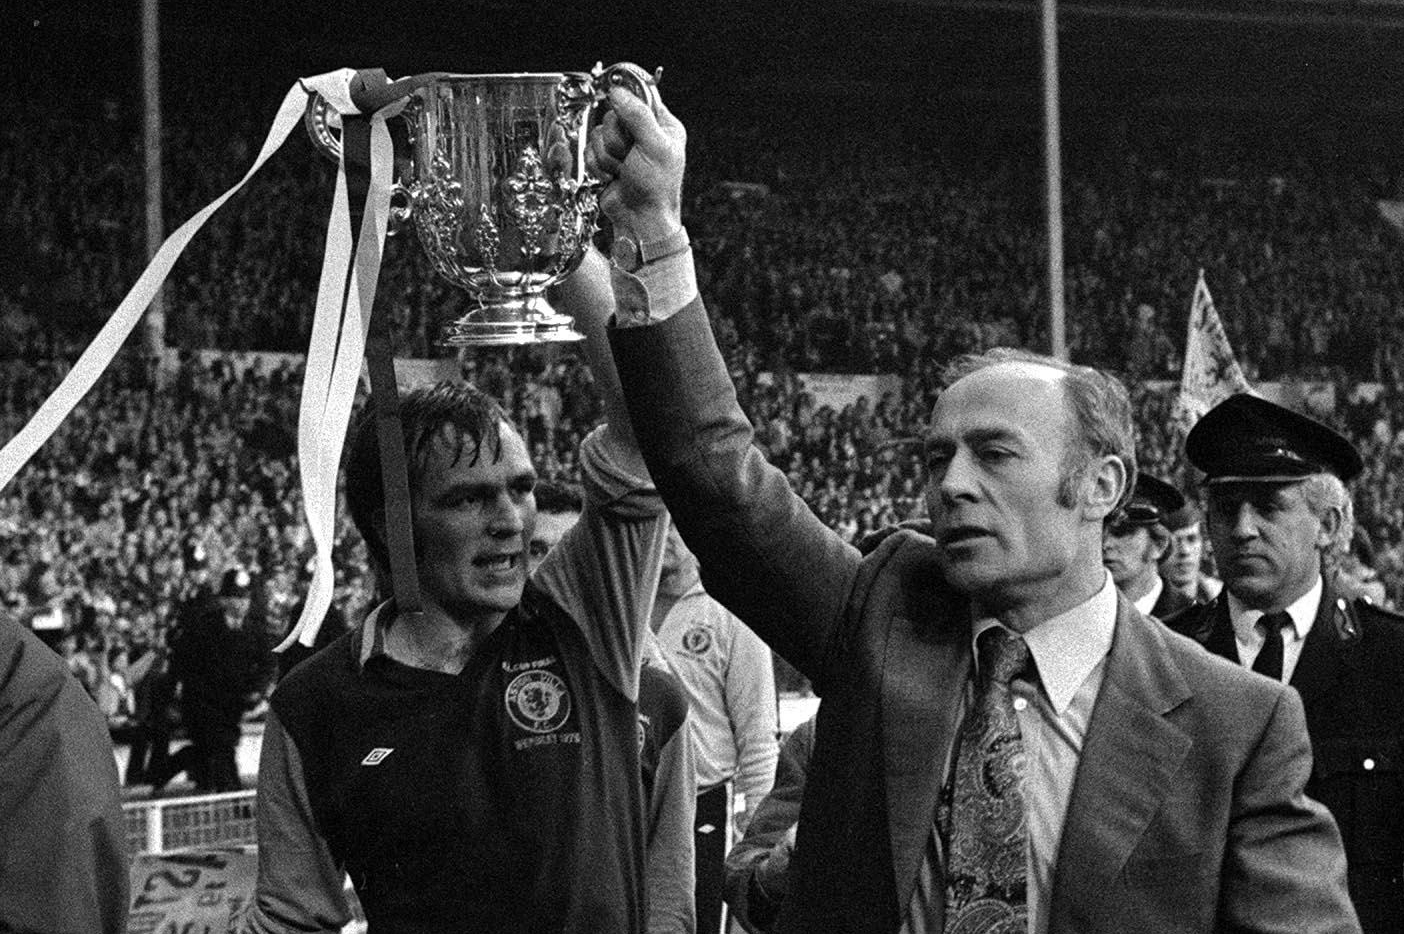 Ron Saunders and Jim Smith were great men, as well as managers